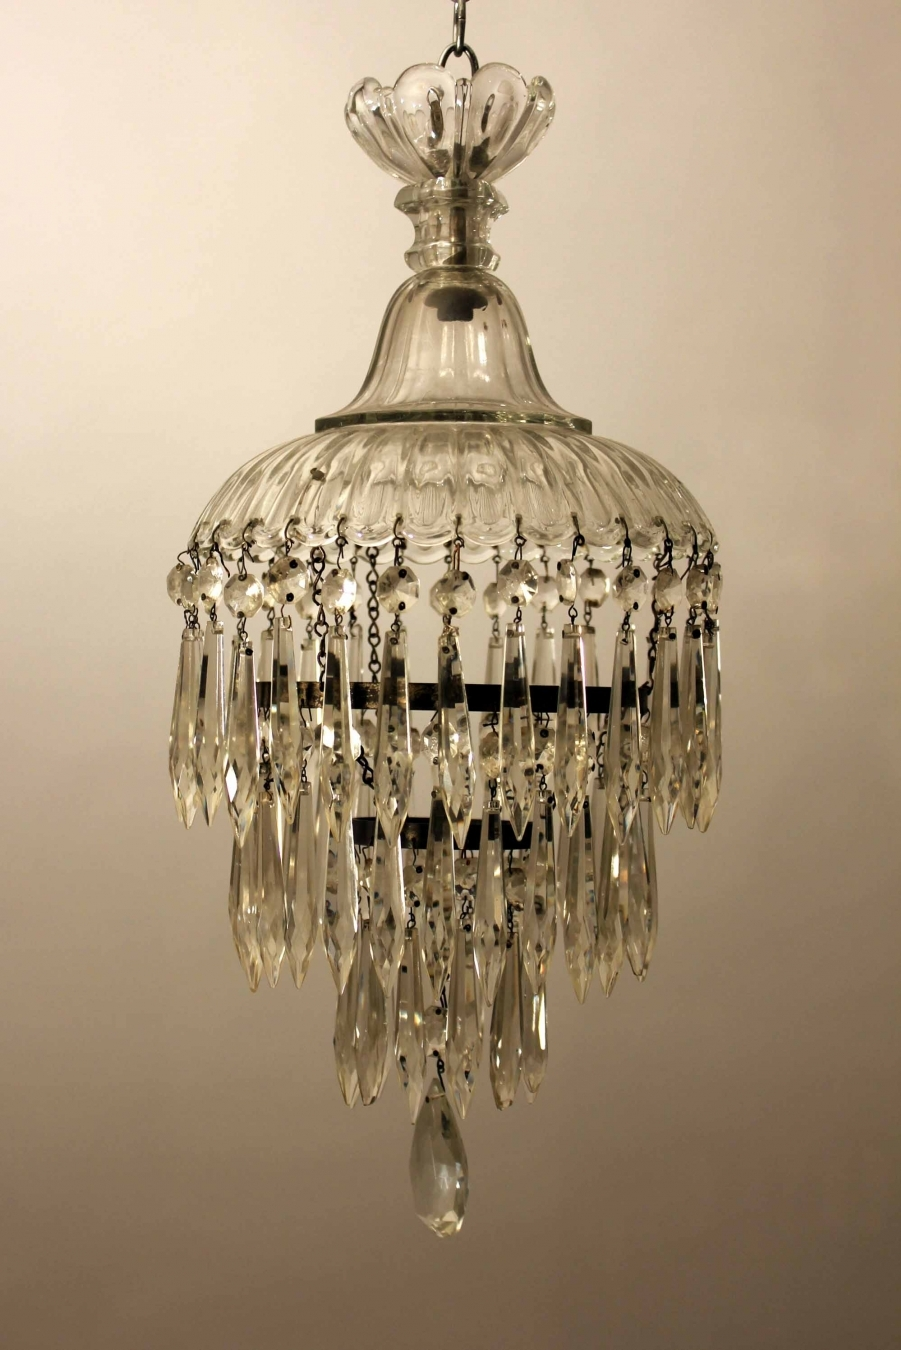 Pair of edwardian chandeliers trendfirst pair of edwardian chandeliers mozeypictures Gallery